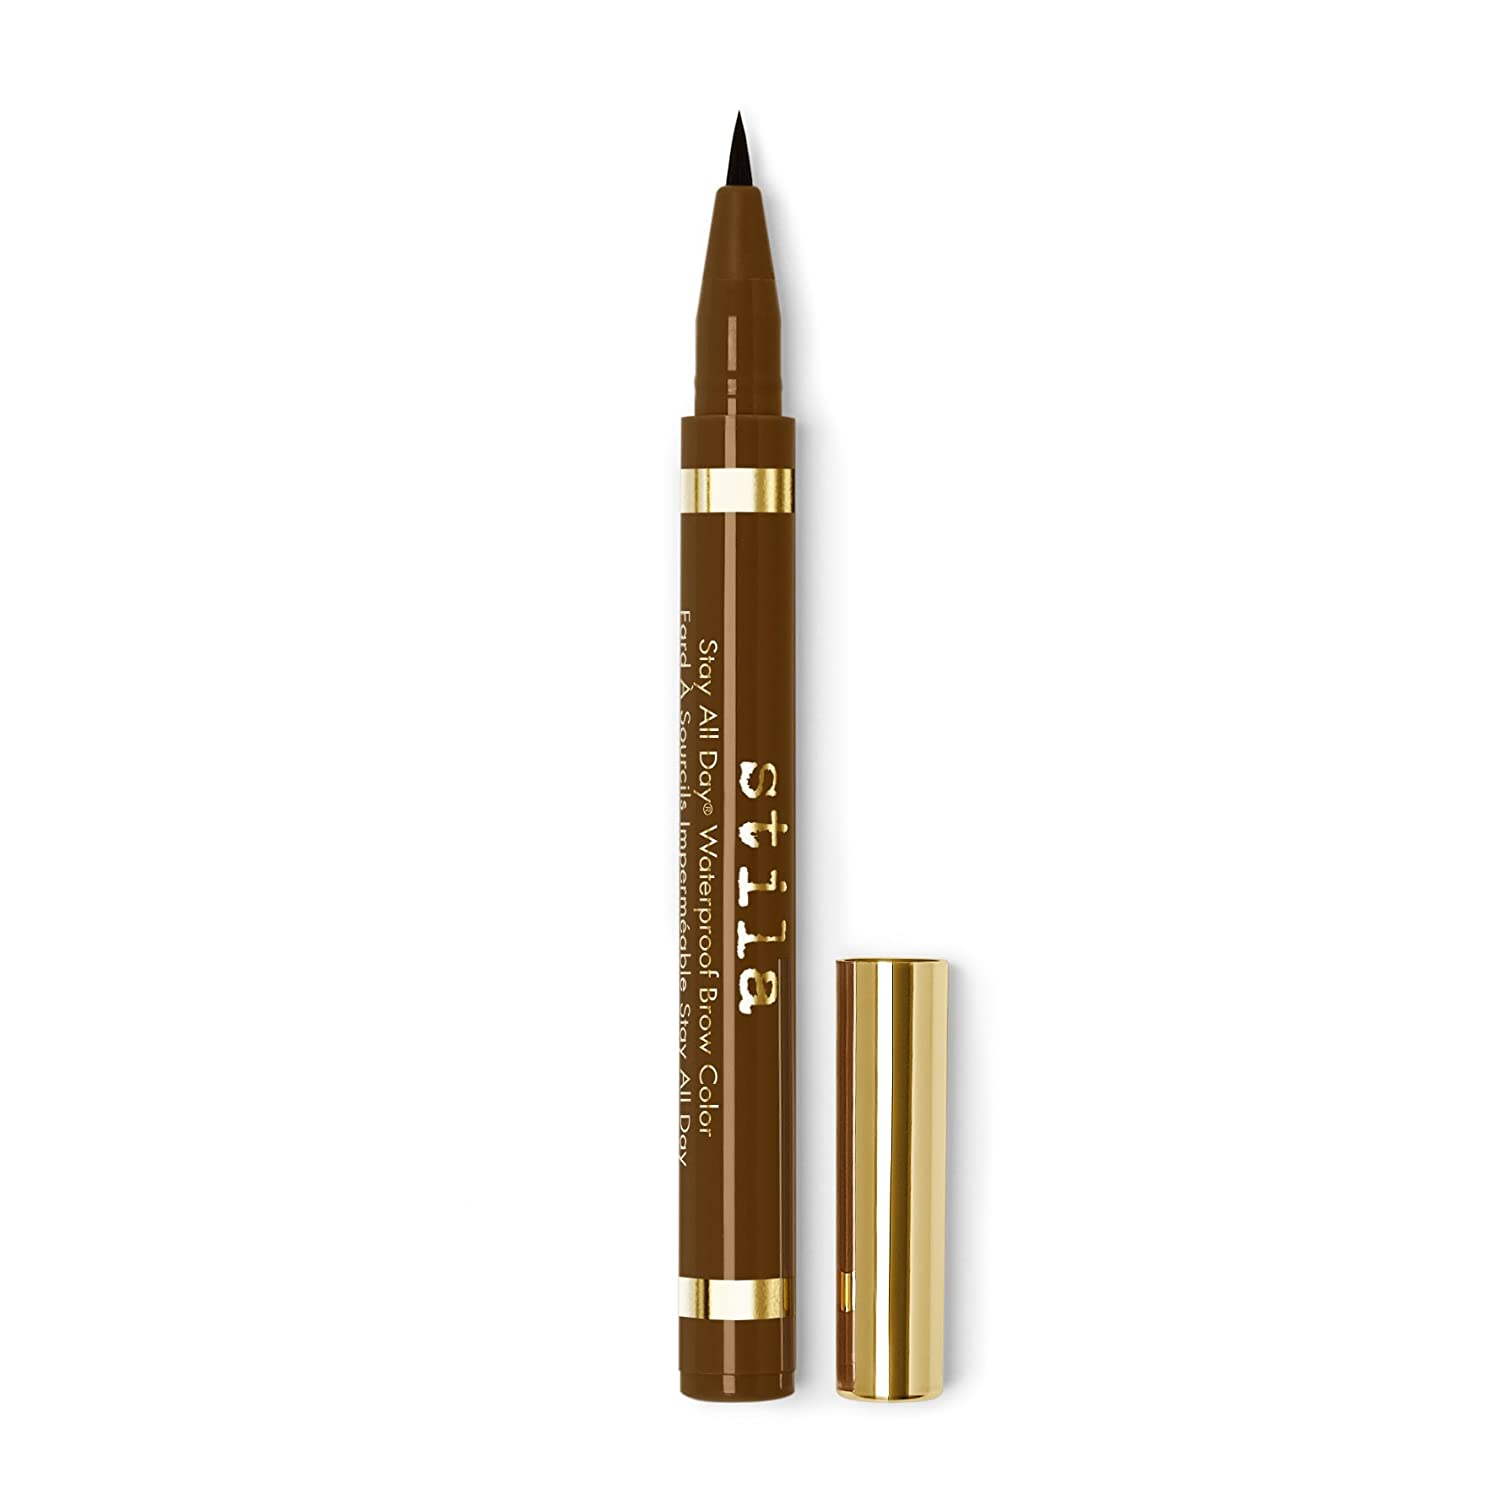 Stila Stay All Day Waterproof Brow Color, Medium